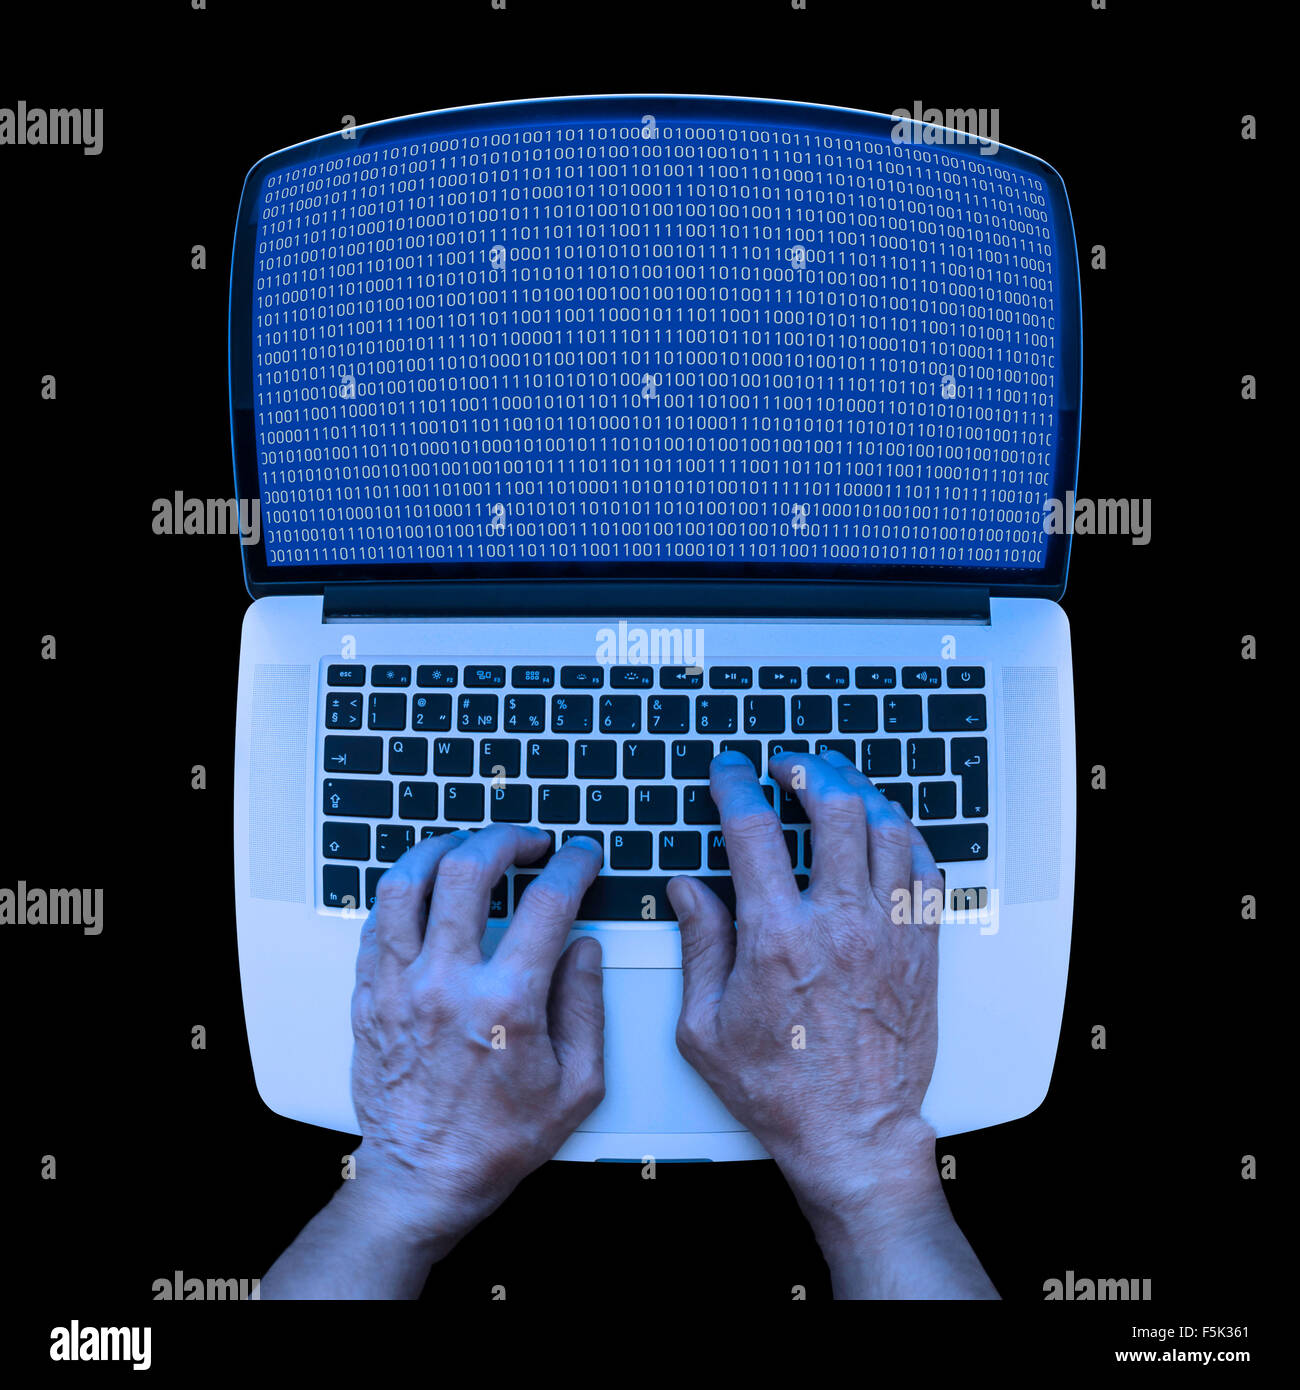 A developer in informatics is using a laptop to code in binary system at night - Stock Image